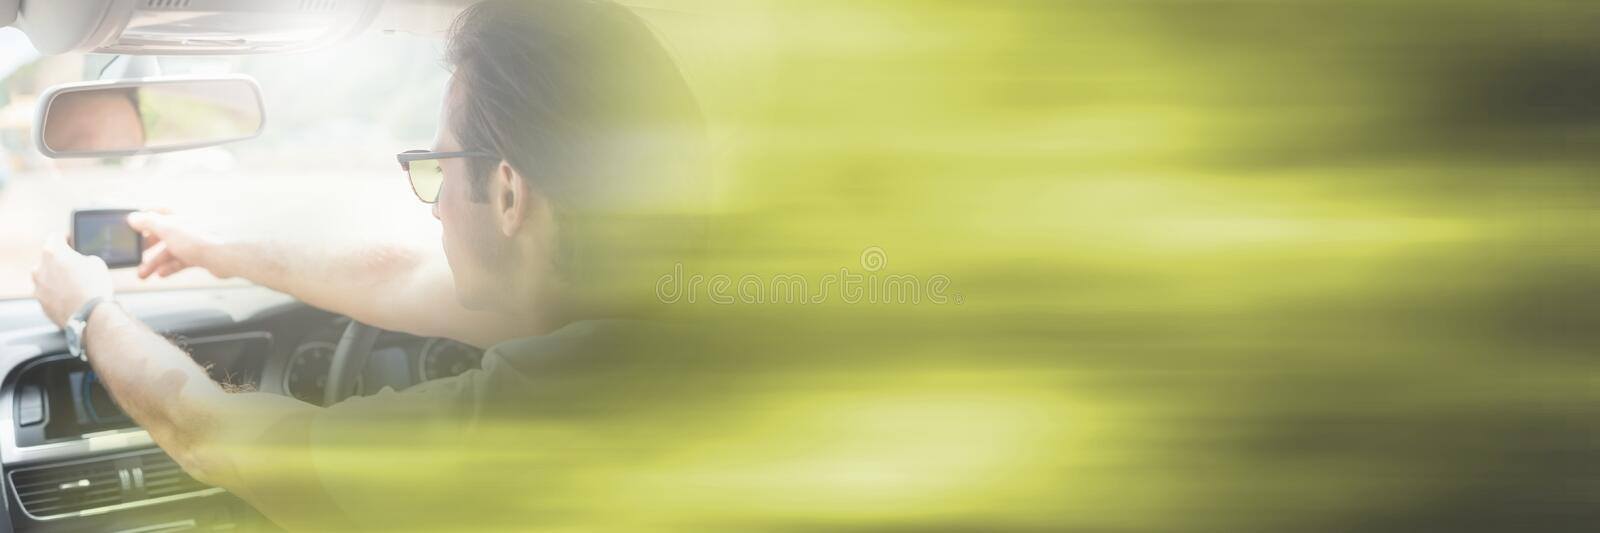 Man in car with transition effect stock photography